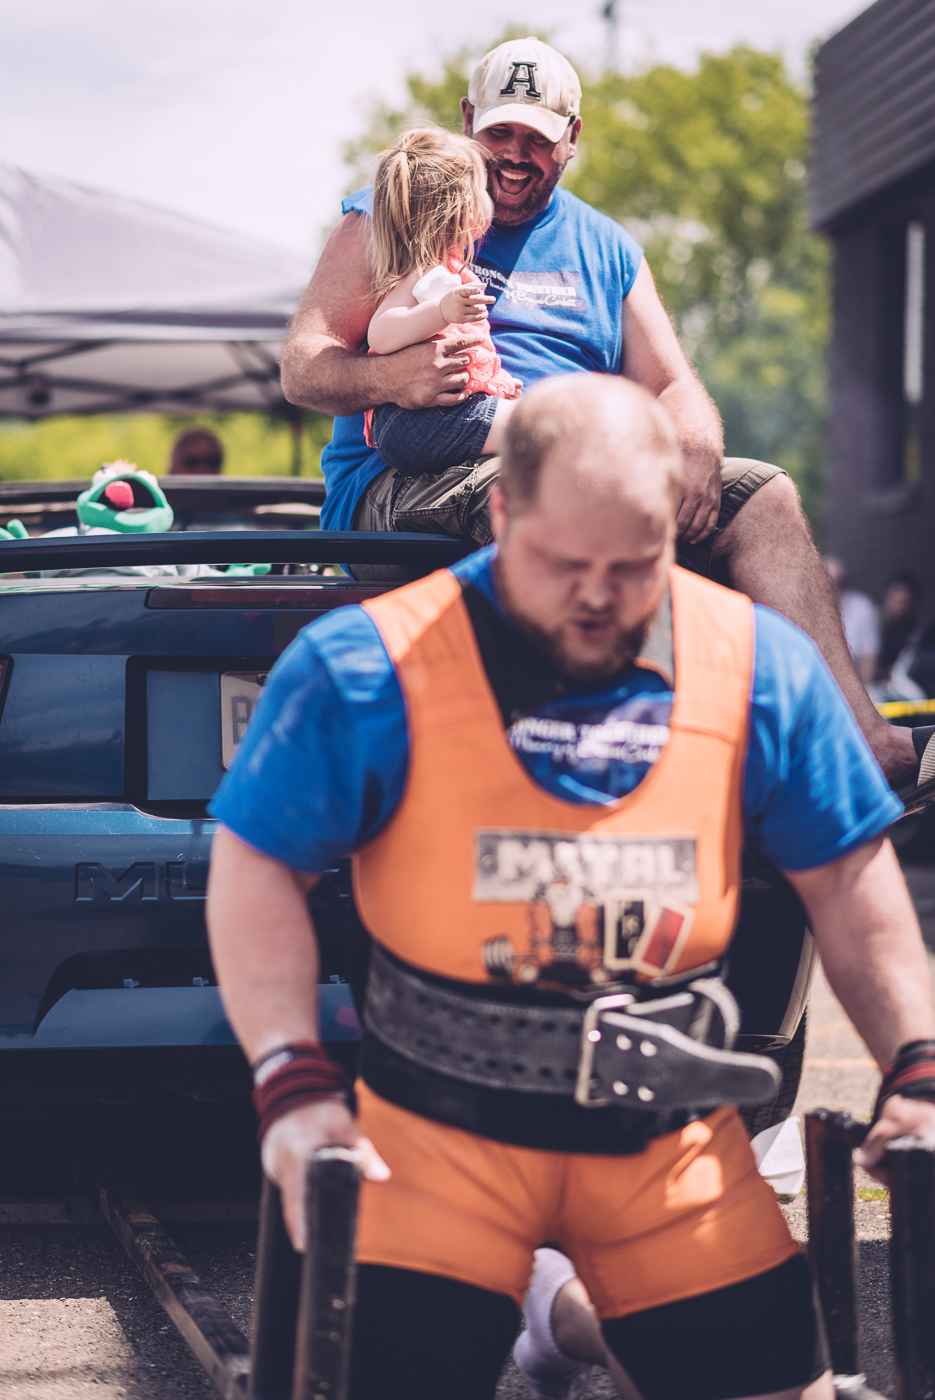 strongman_2016_blog8.jpg